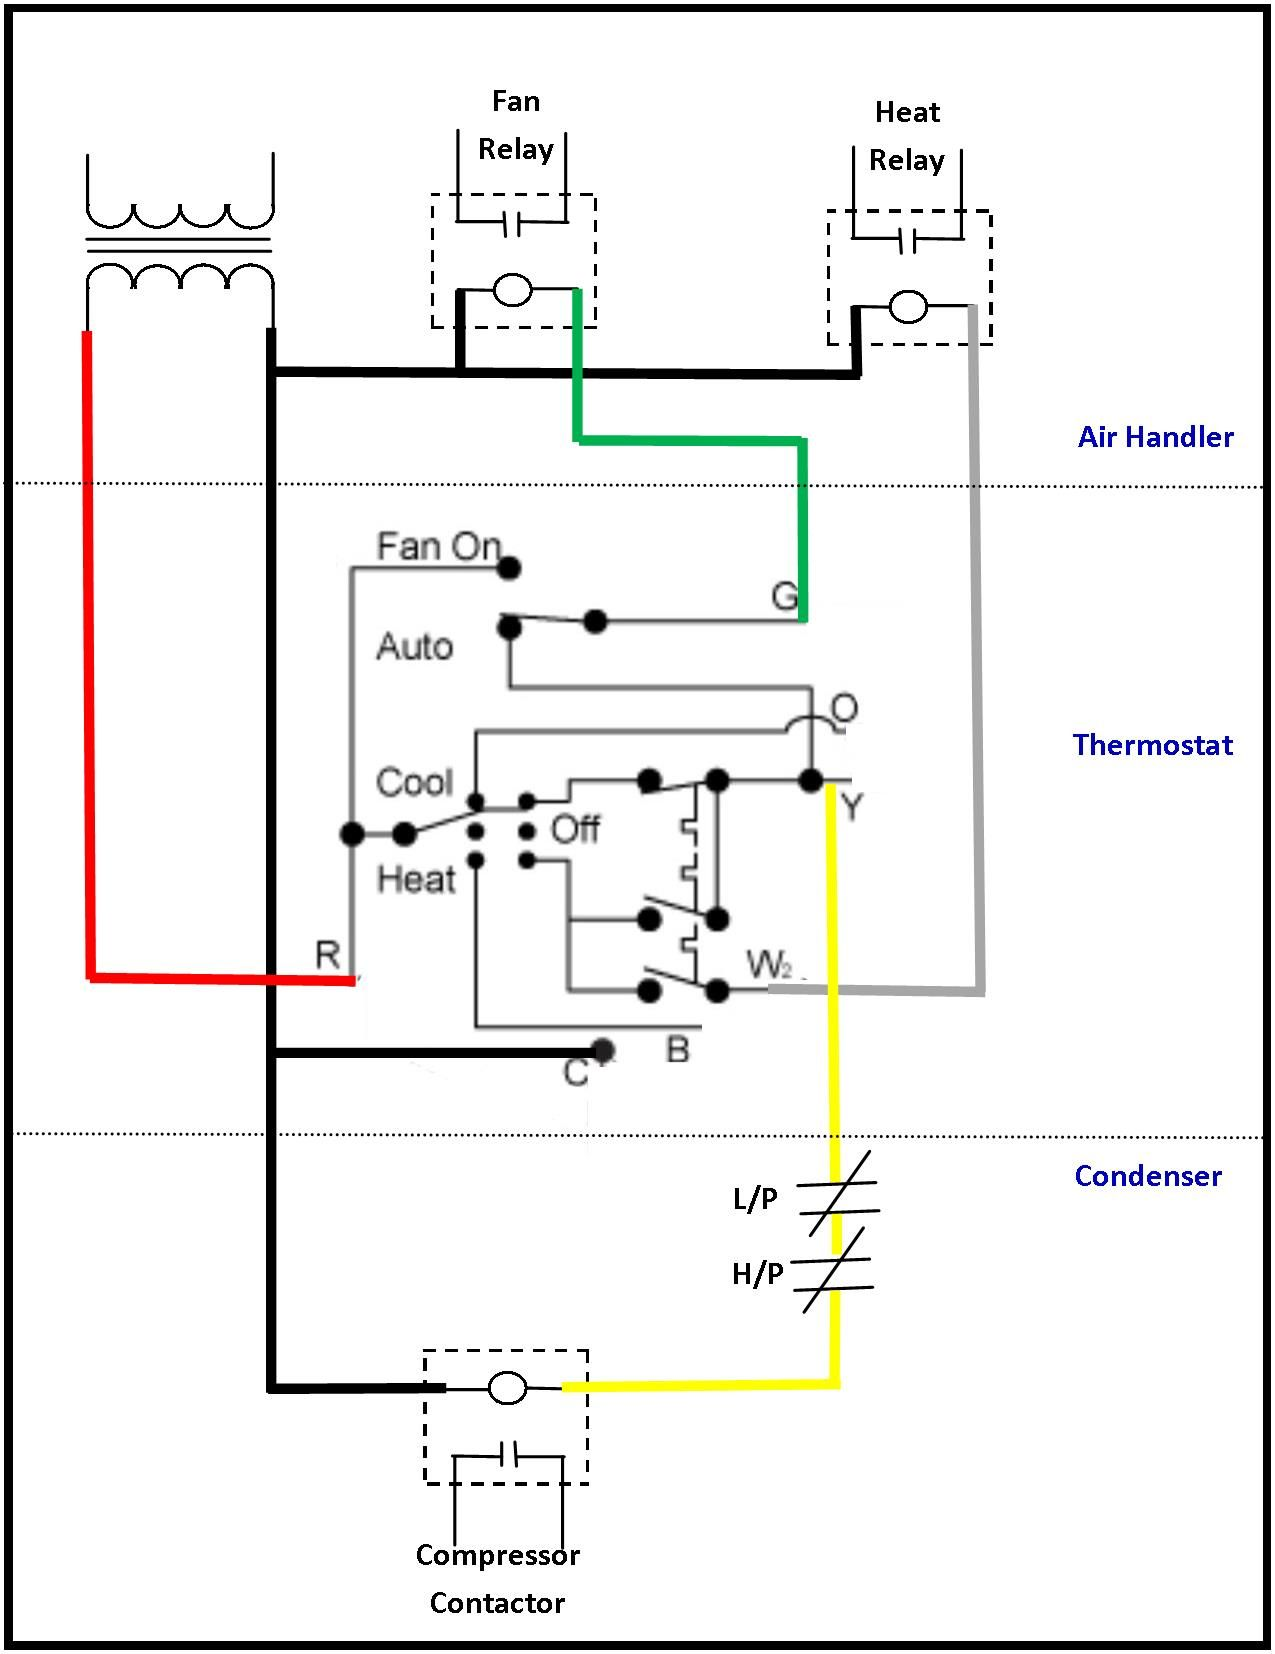 24 Volt Transformer Wiring Diagram Thermostat Wiring Ac Wiring Electrical Circuit Diagram